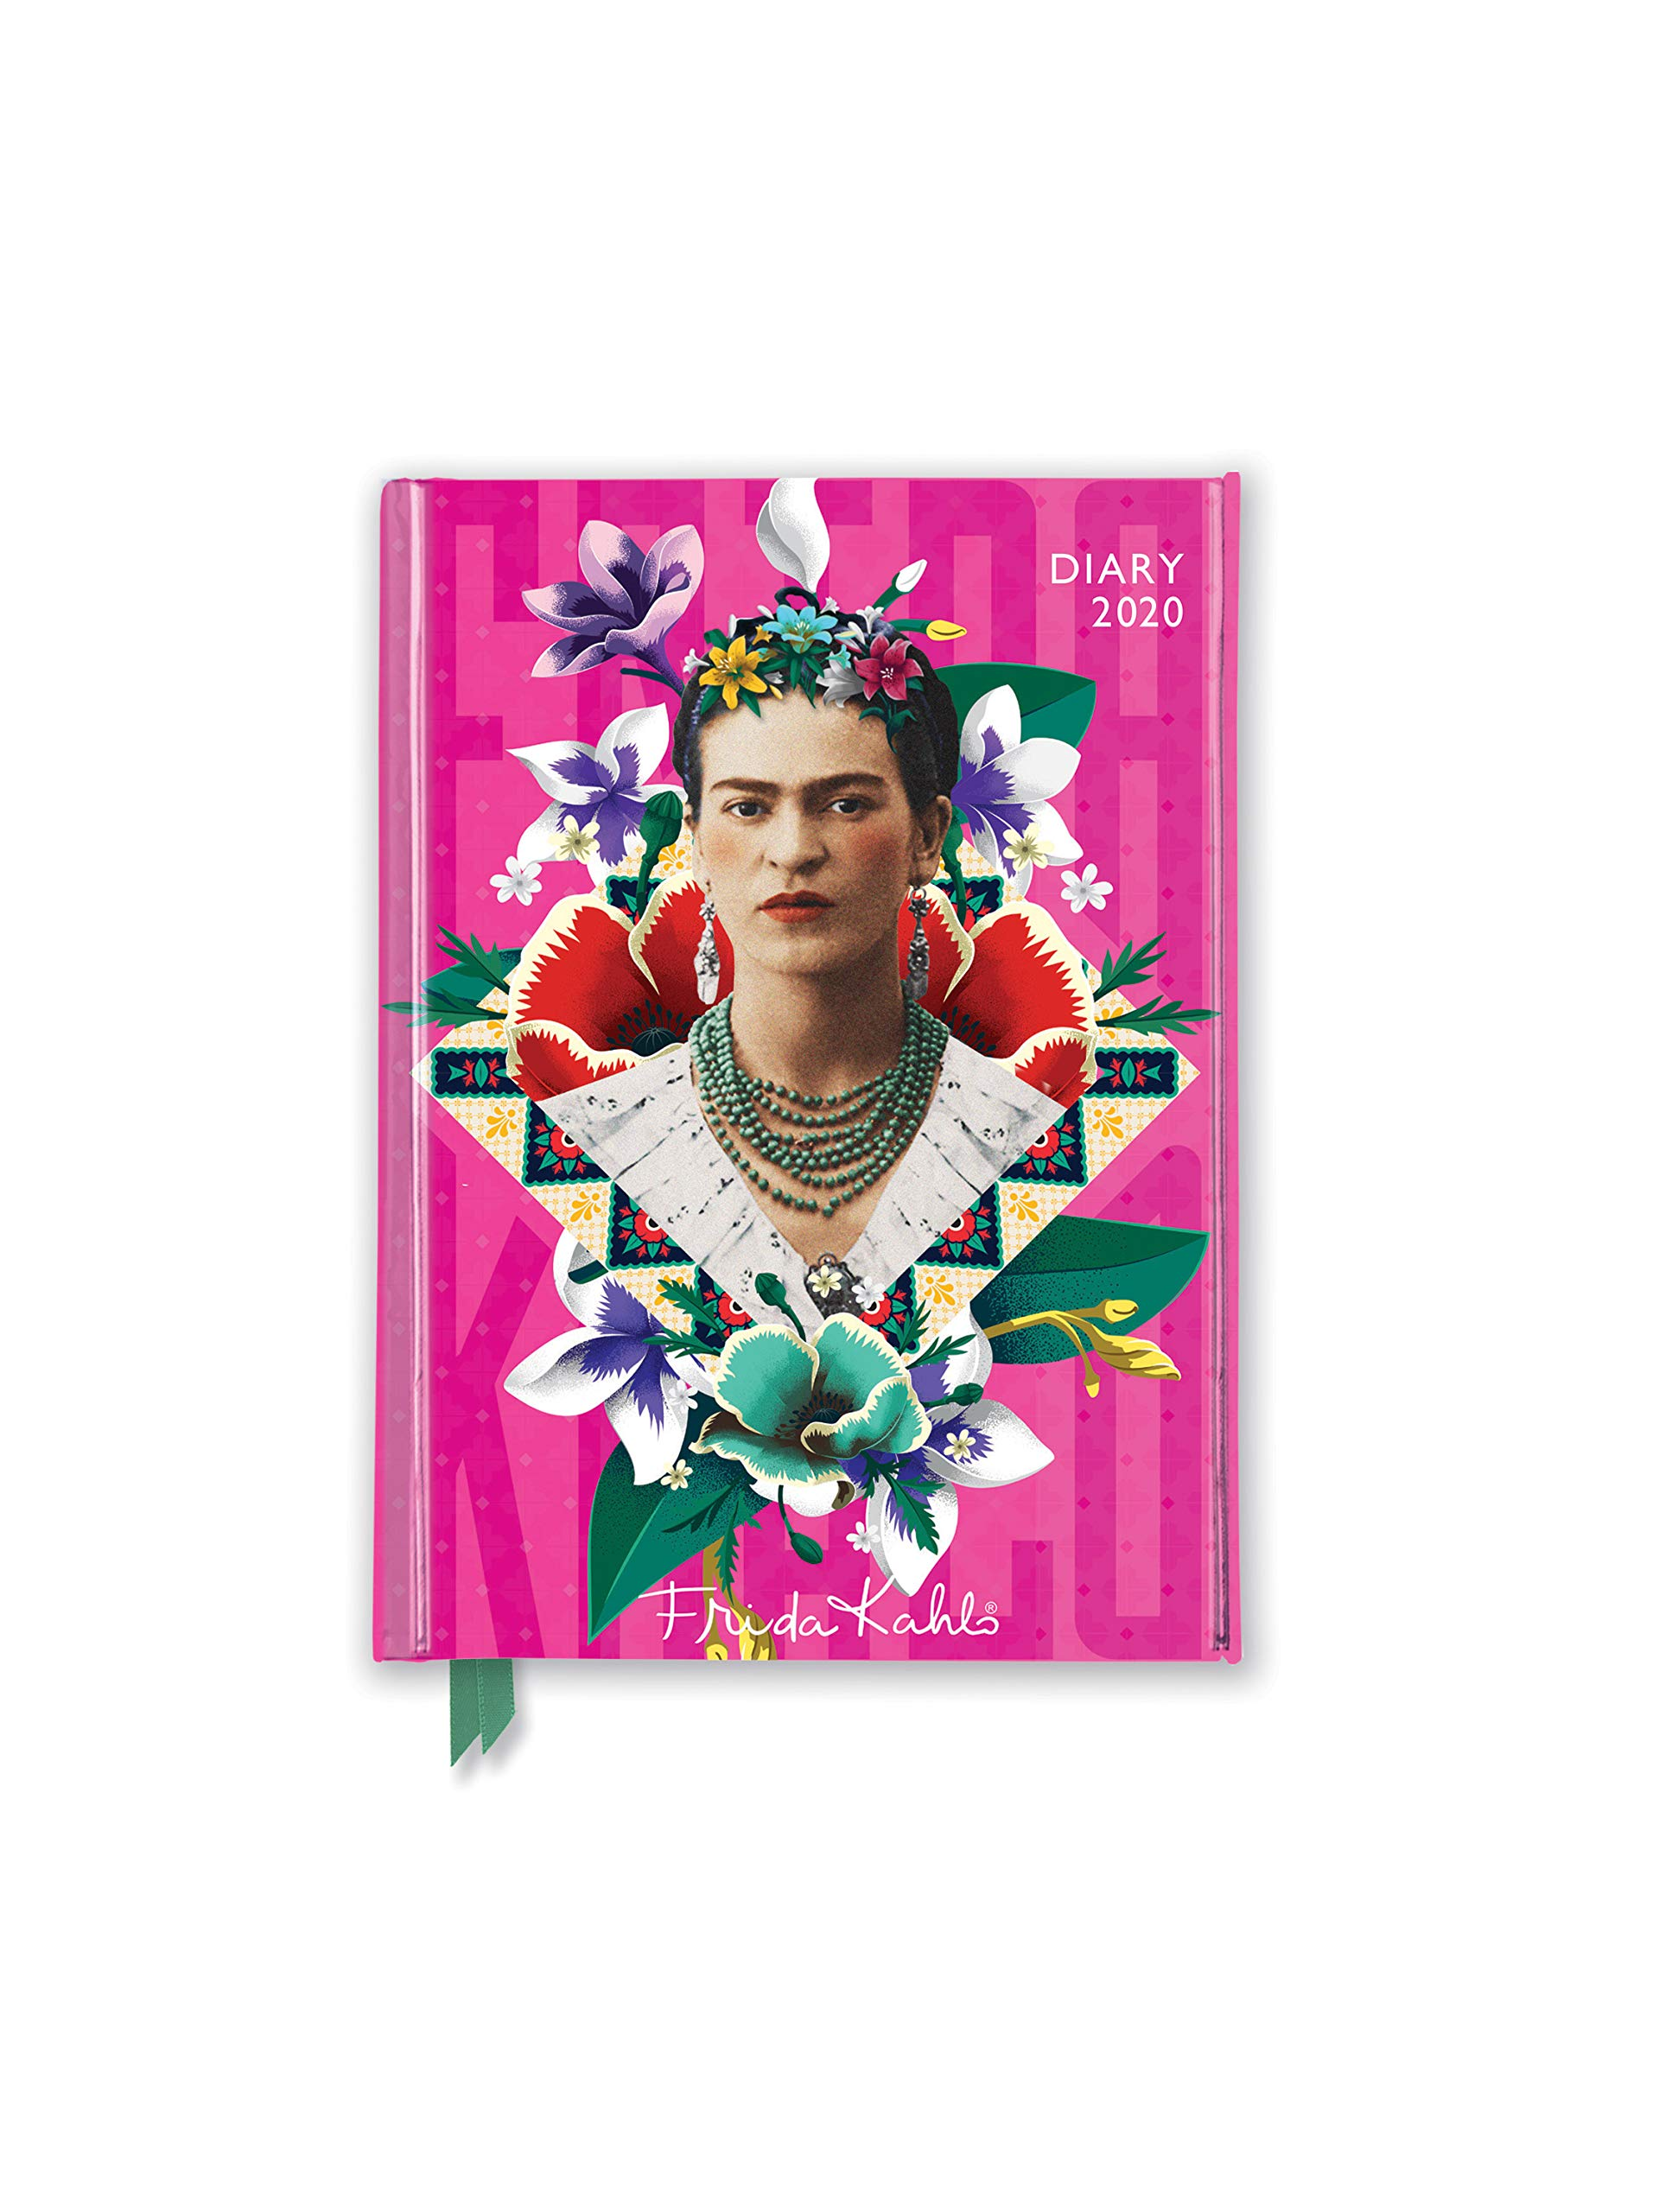 Frida Kahlo Pocket Diary 2020: Amazon.es: Flame Tree Studio ...